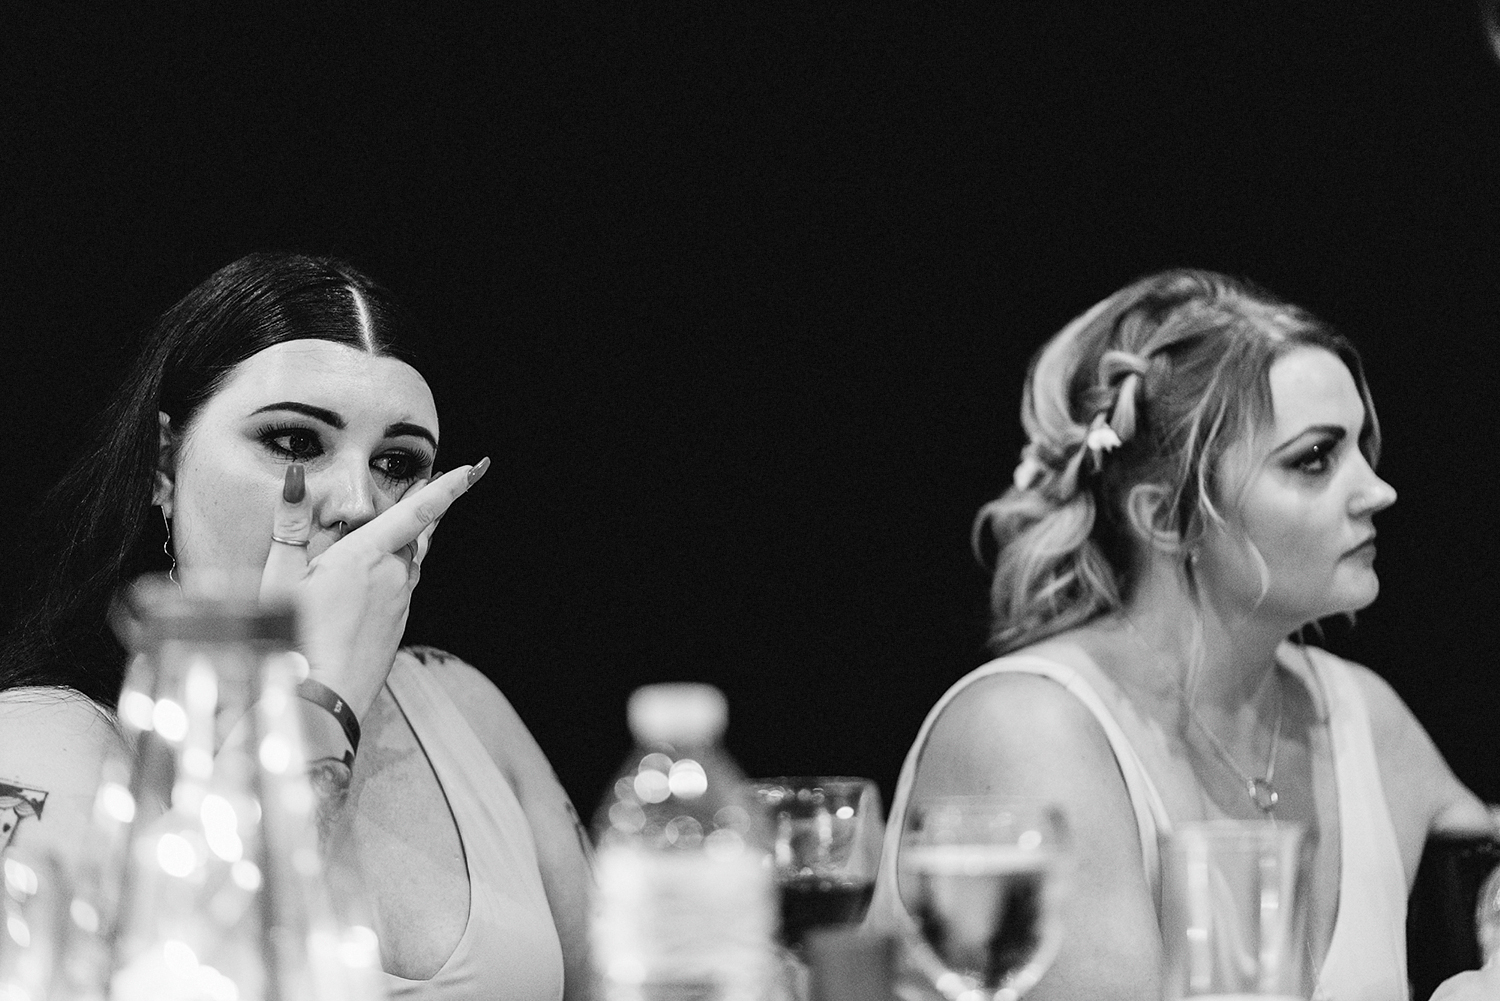 cabo-san-lucas-ventanas-private-residence-alternative-toronto-wedding-photographer-documentary-photojournalistic-reception-sunset-speeches-love-actually-moments-over-mountains-candid-bride-and-groom-speech-moh-crying.jpg